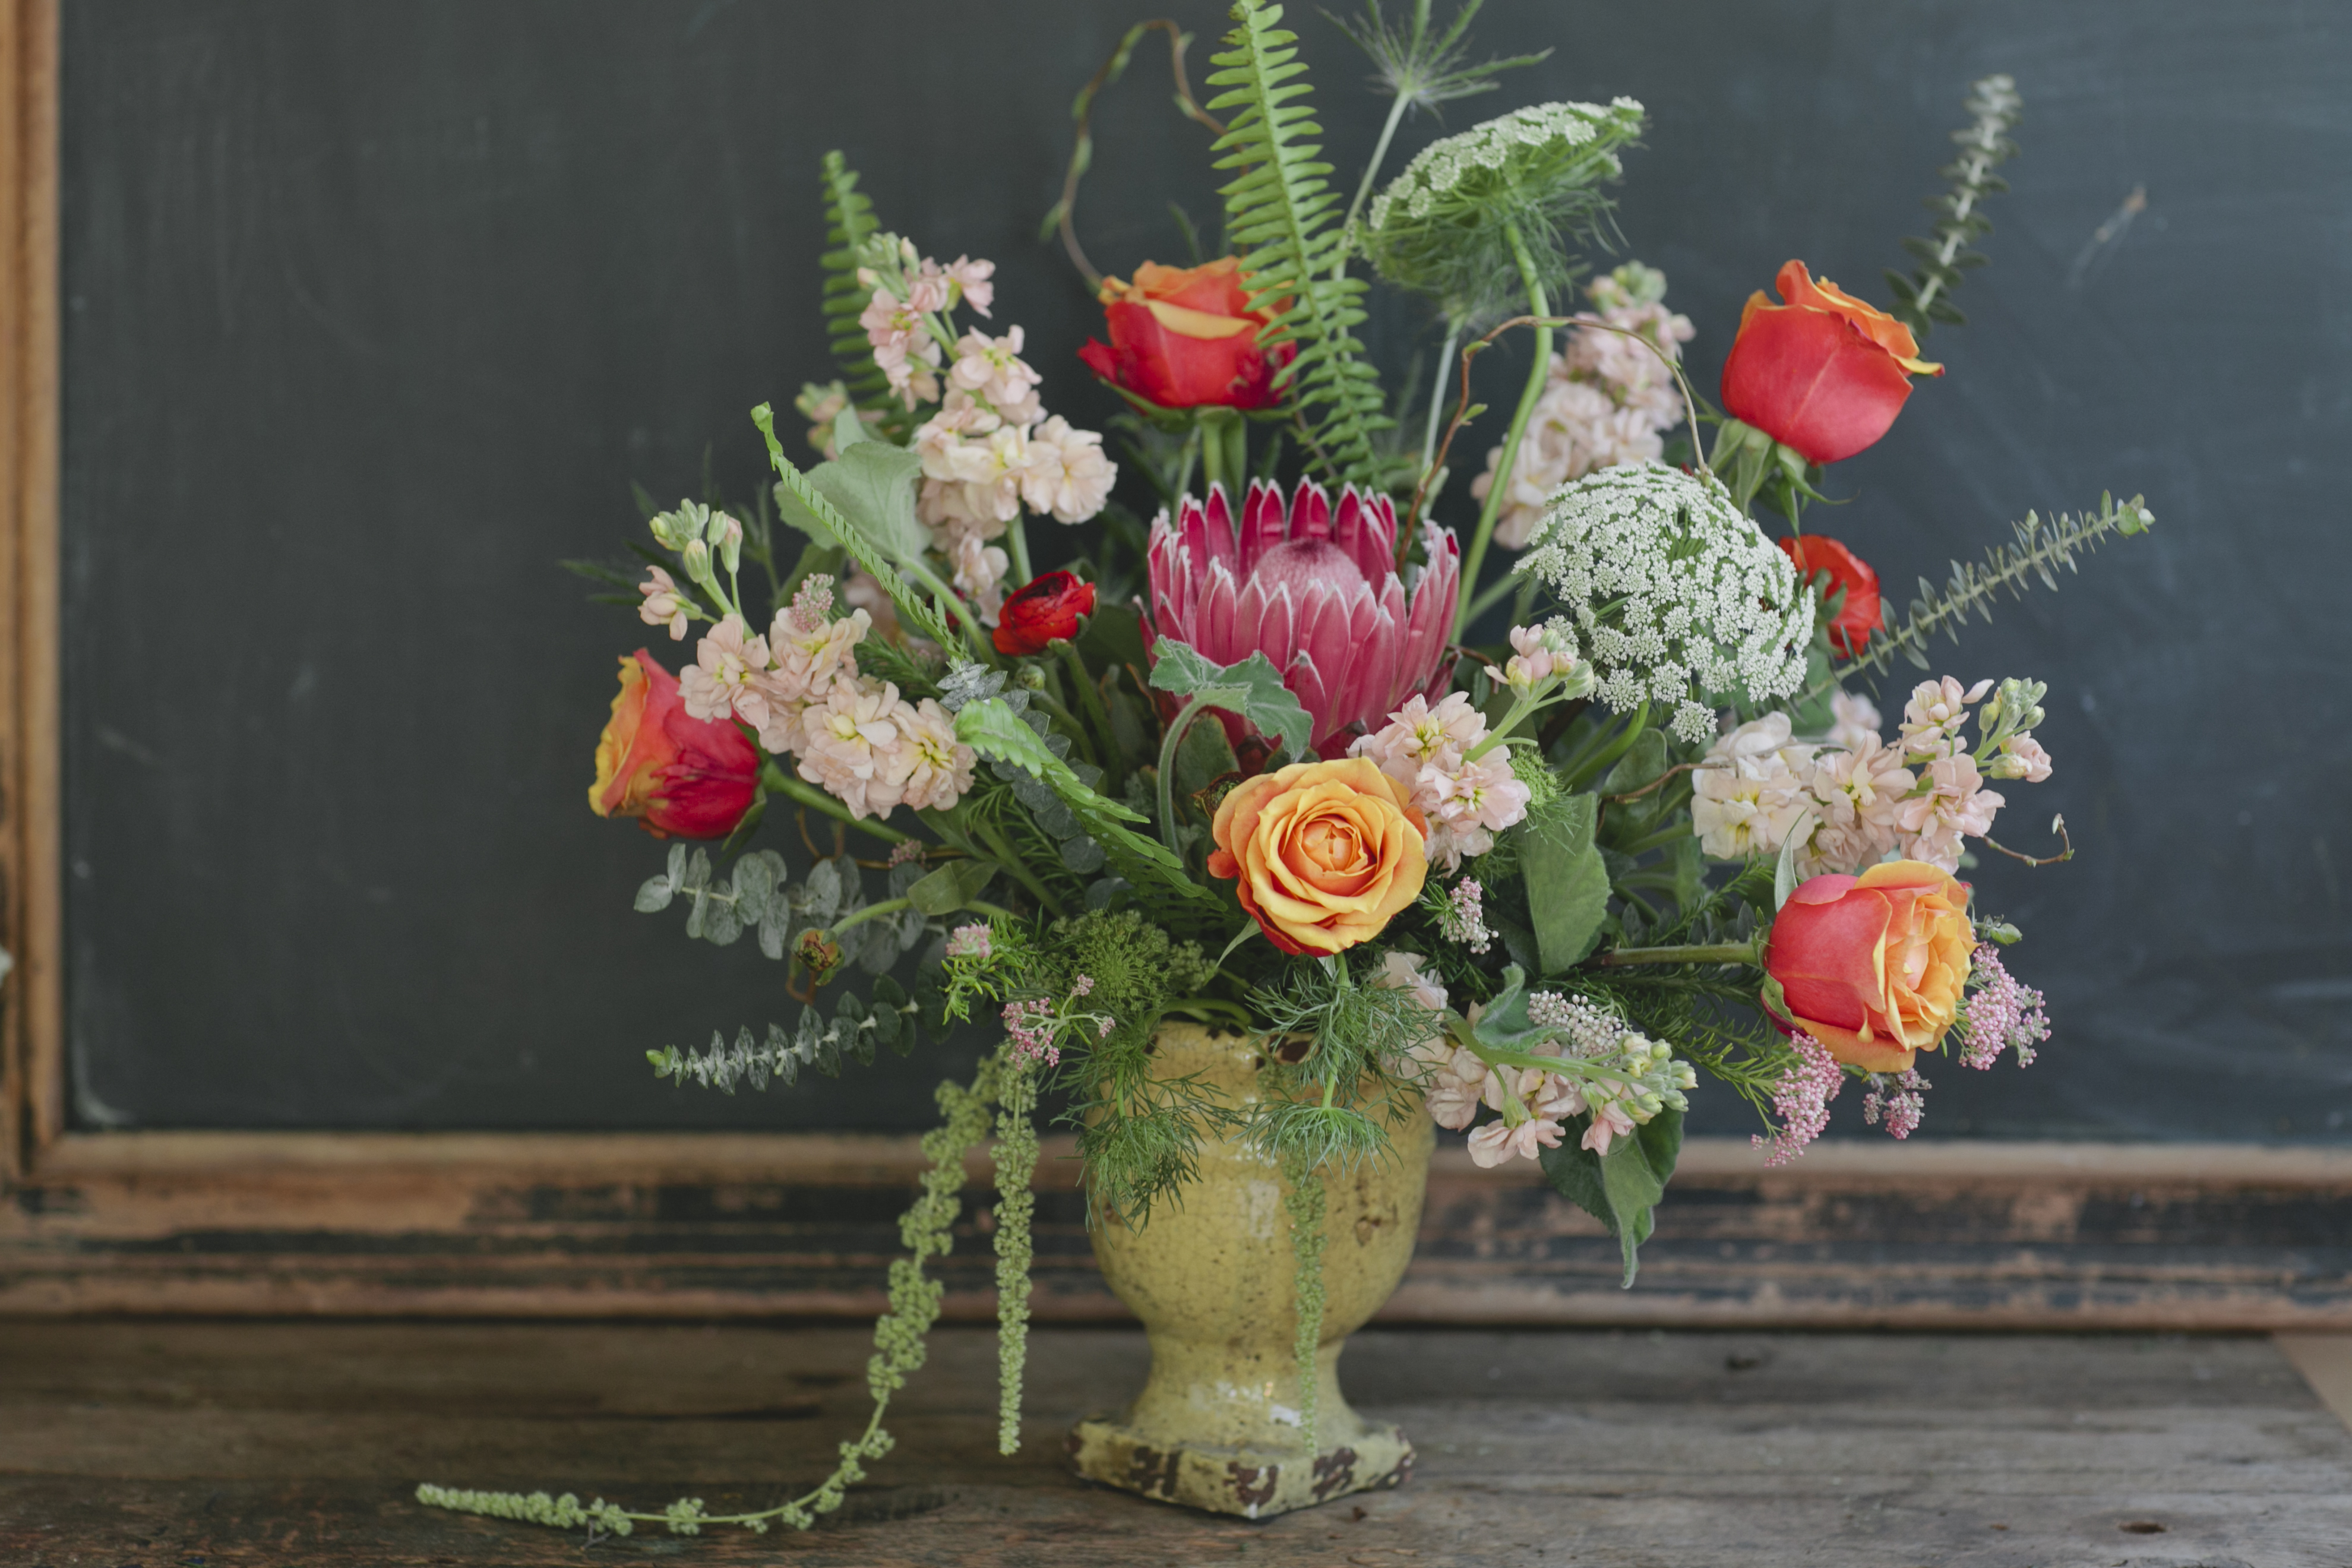 proteas, roses, stock and sword fern